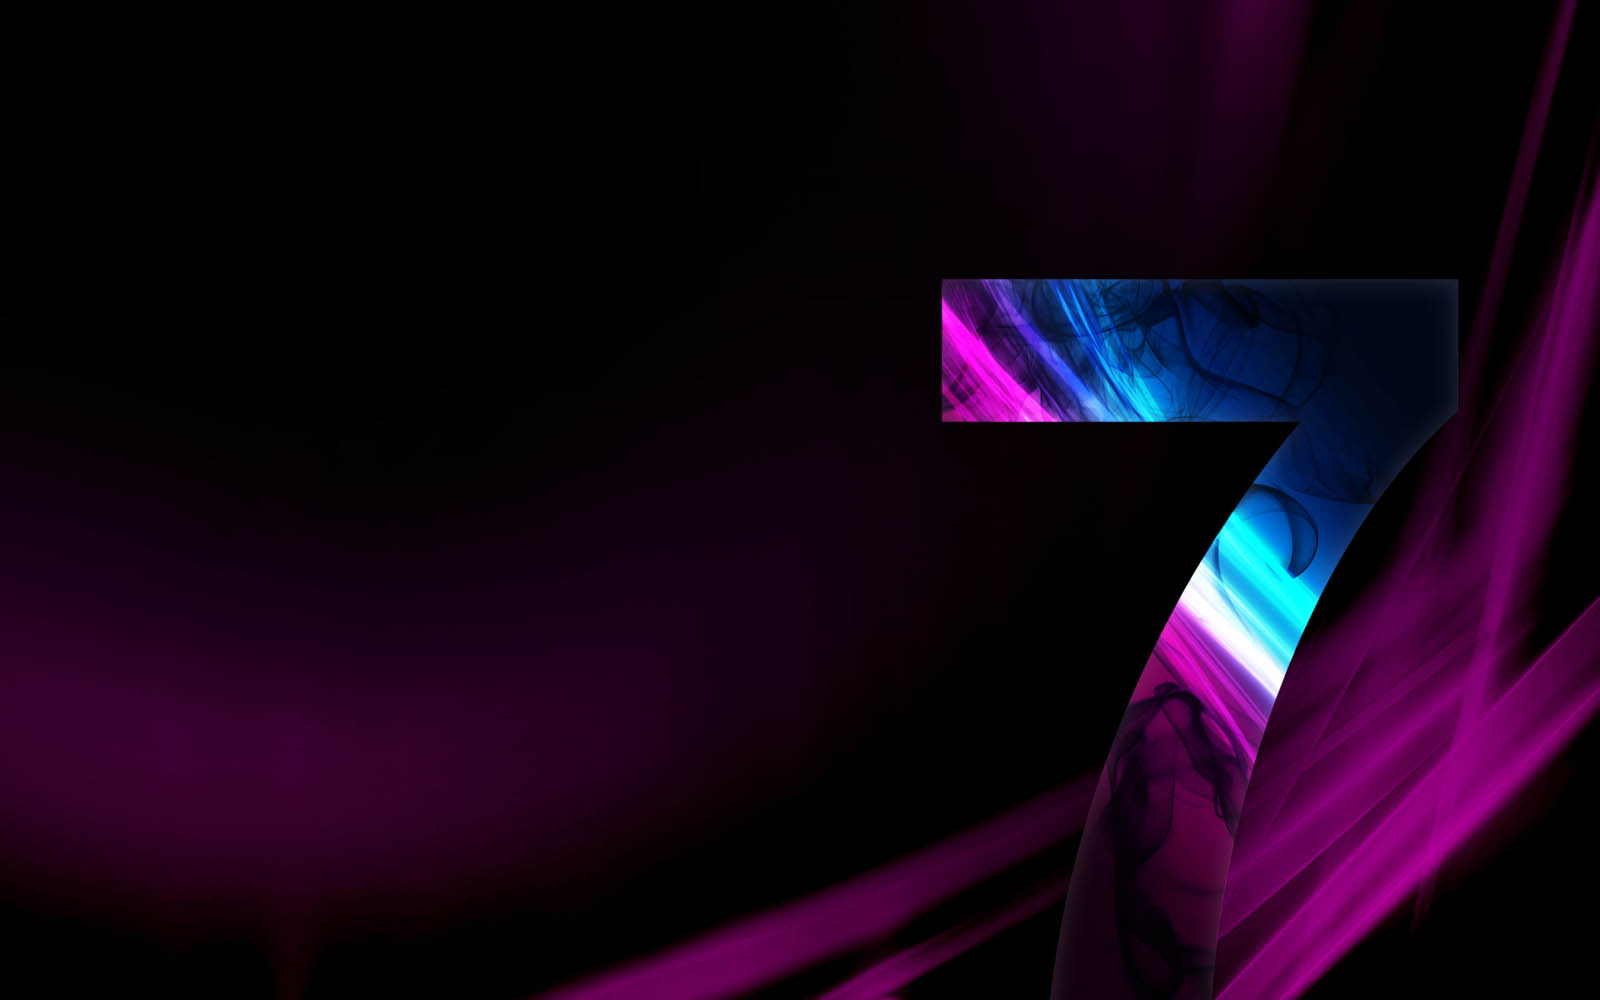 Windows 7 Style Wallpapers